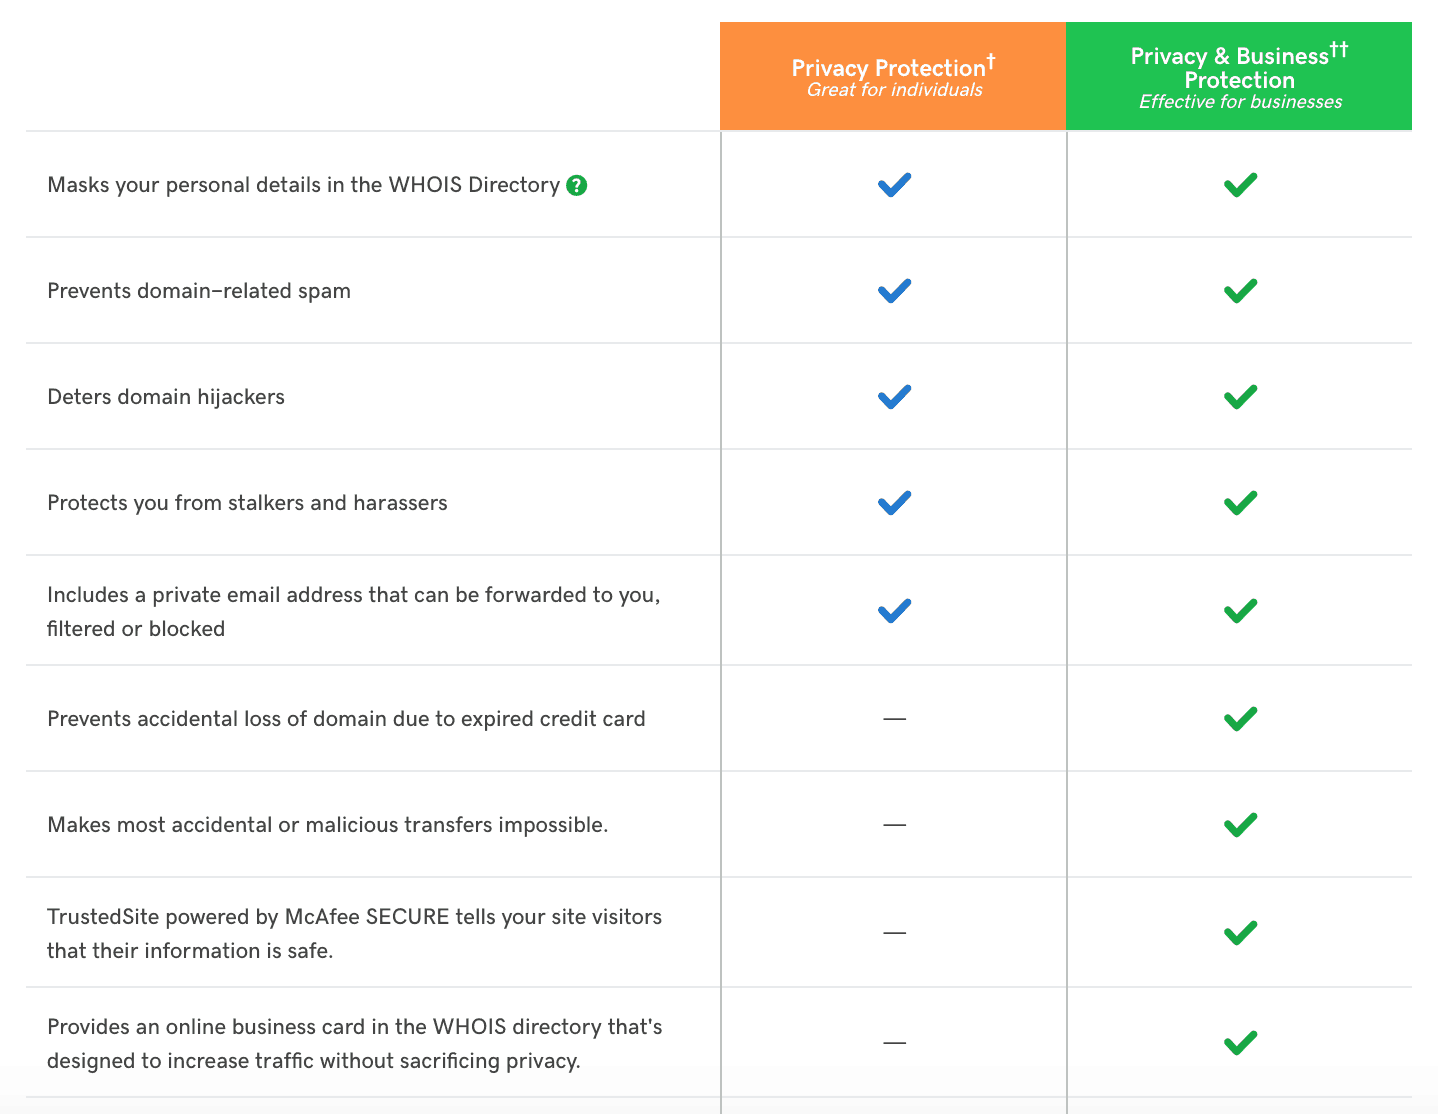 What's included in GoDaddy's Privacy Protection Plans